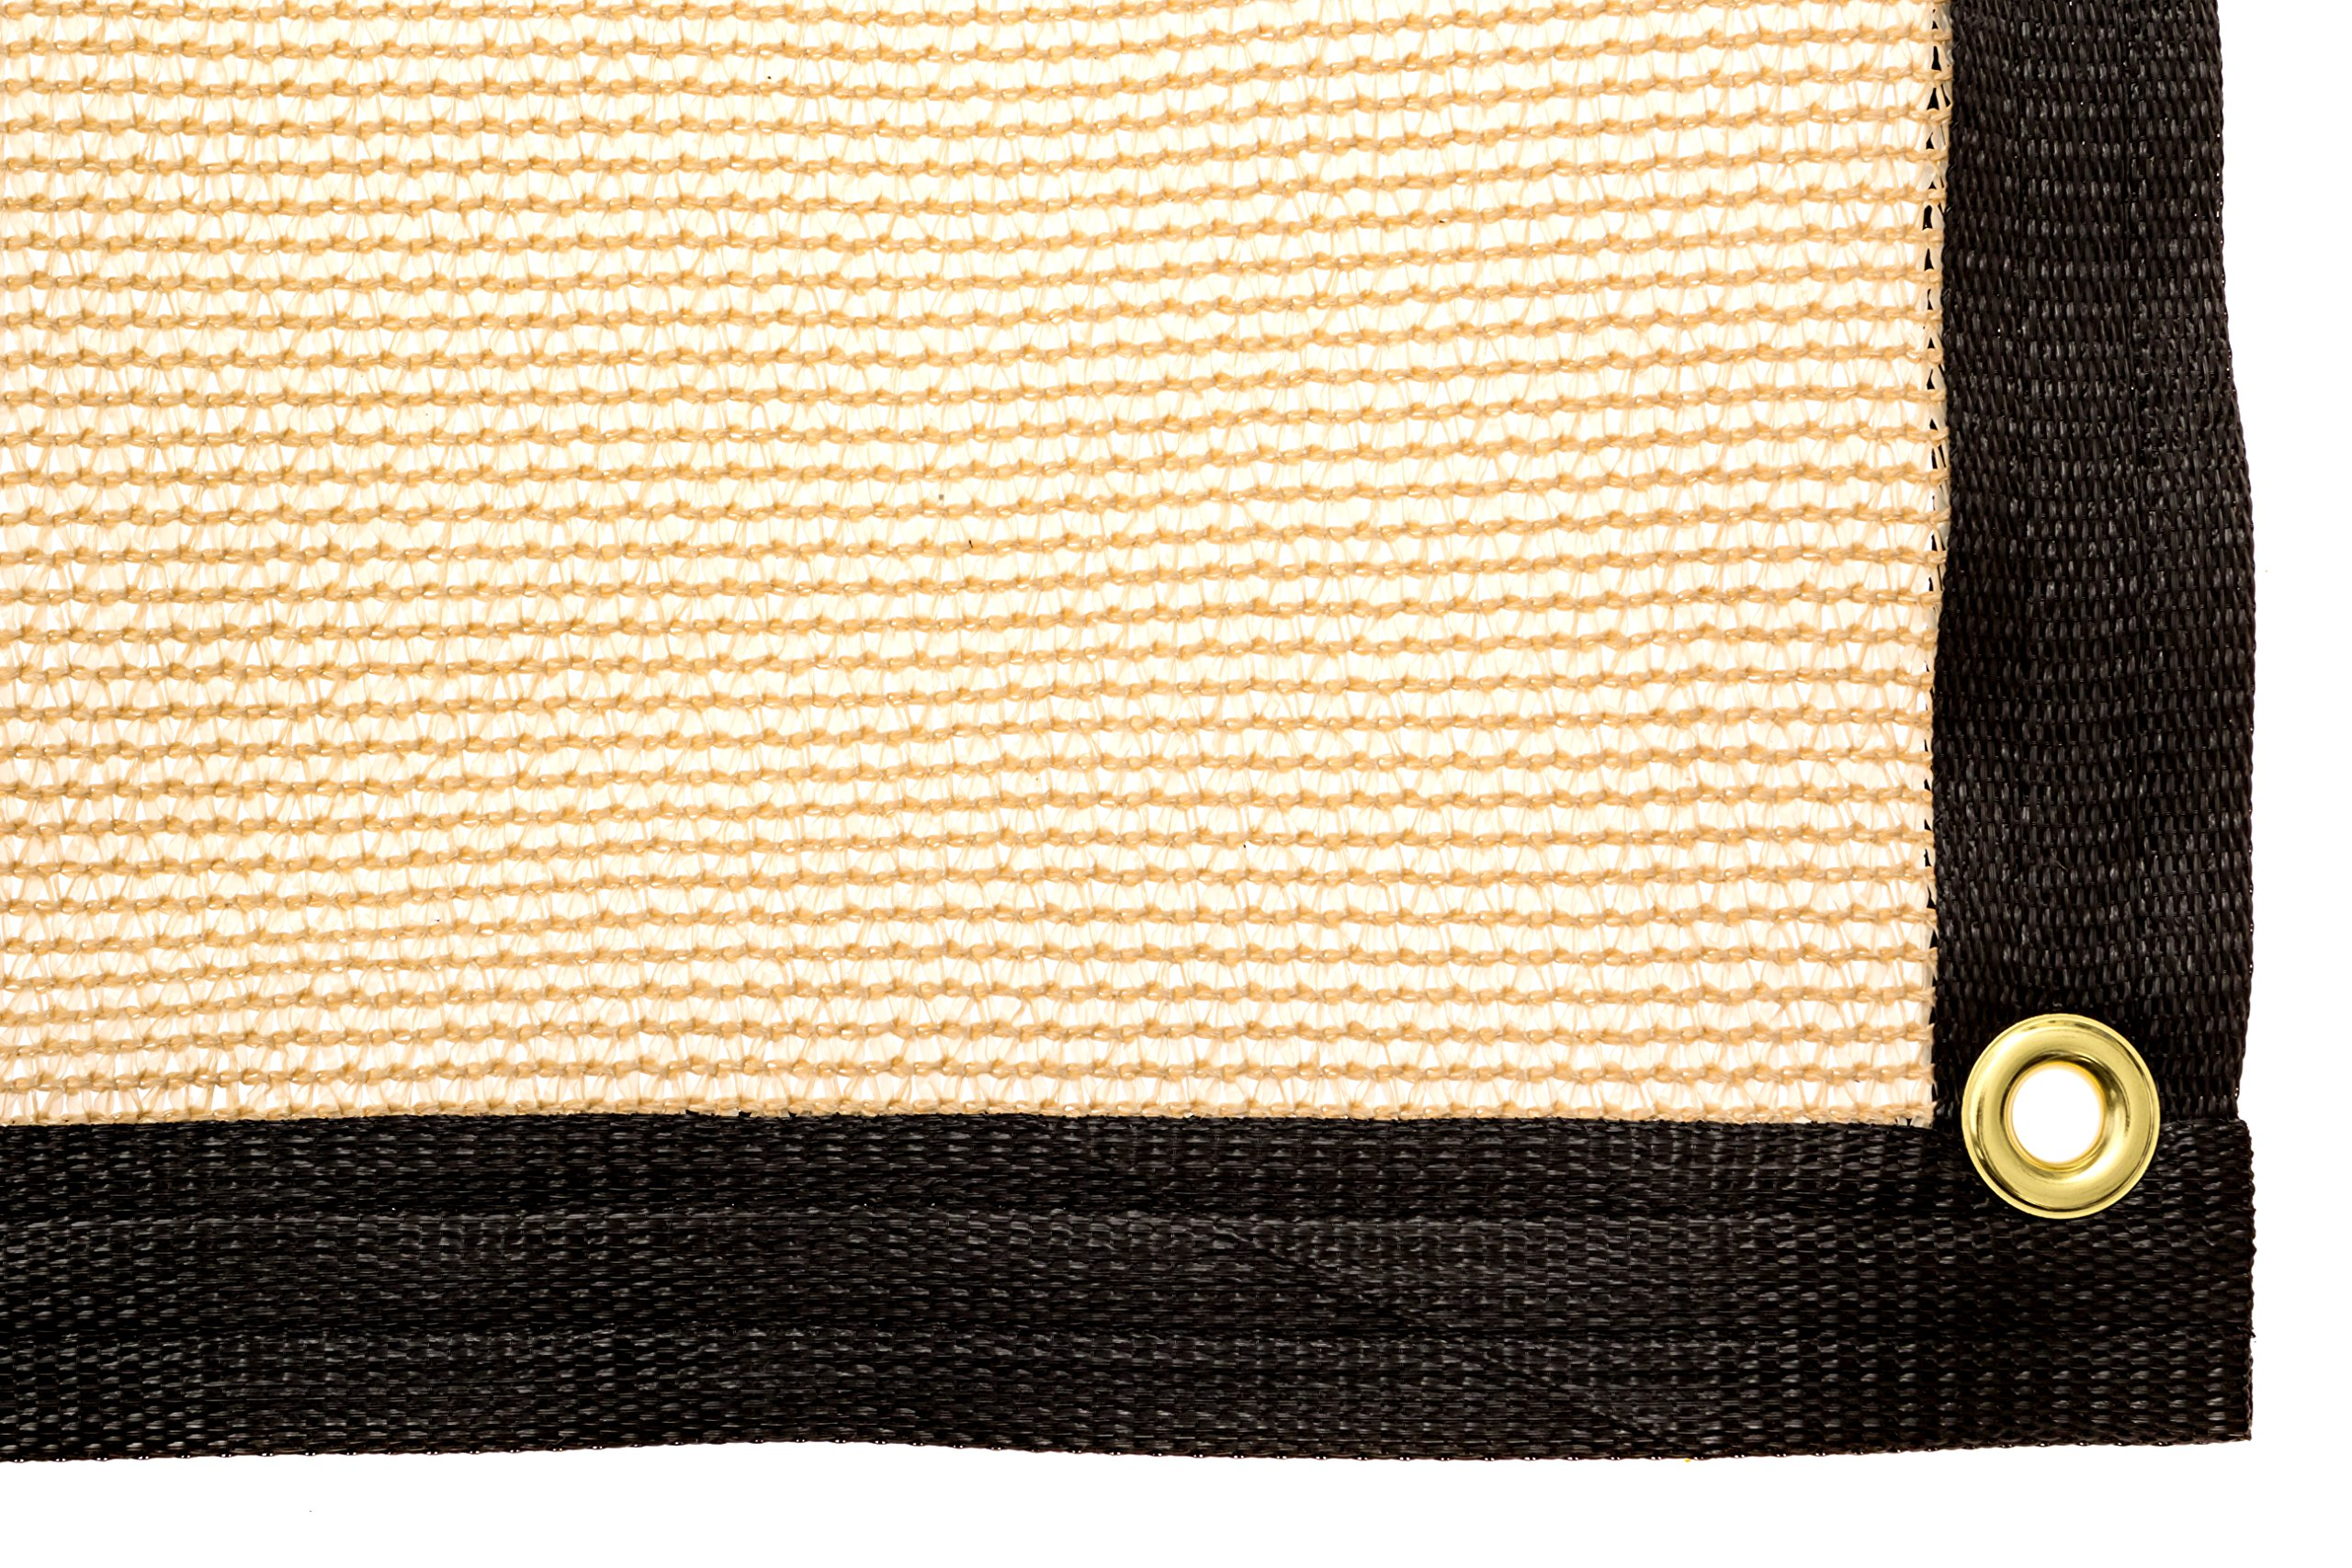 Be Cool Solutions 70% Brown Outdoor Sun Shade Canopy: UV Protection Shade Cloth| Lightweight, Easy Setup Mesh Canopy Cover with Grommets| Sturdy, Durable Shade Fabric for Garden, Patio & Porch 6'x12'